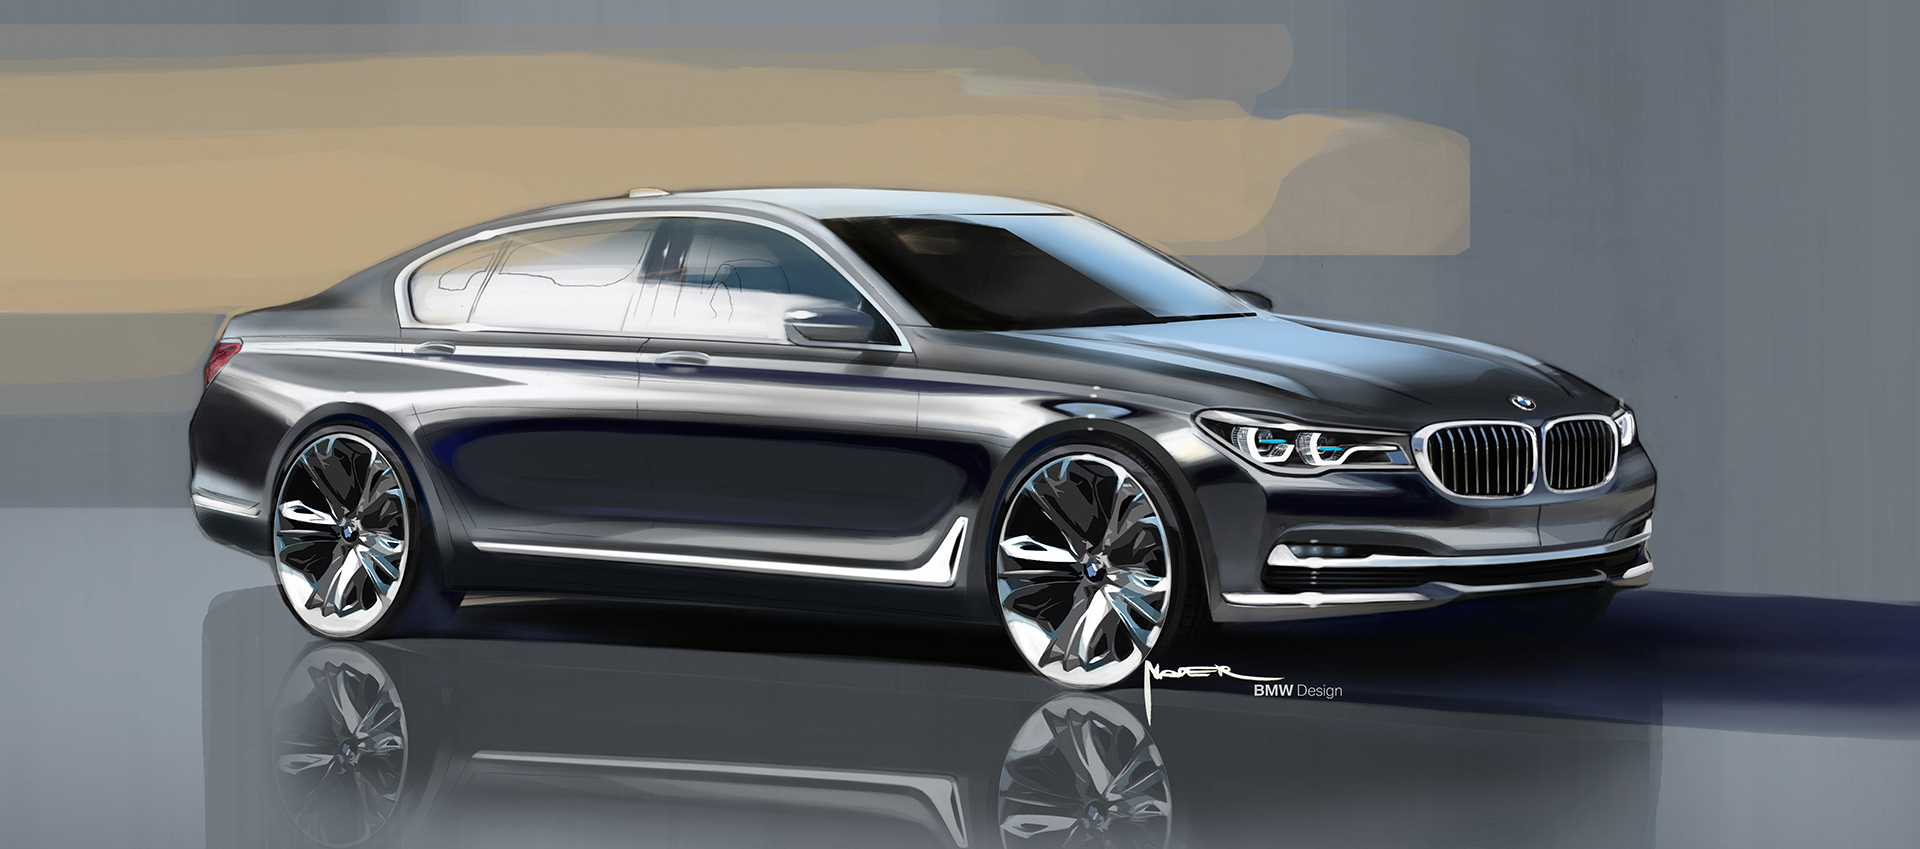 BMW 7serie - 2015 - sketch design - front / avant